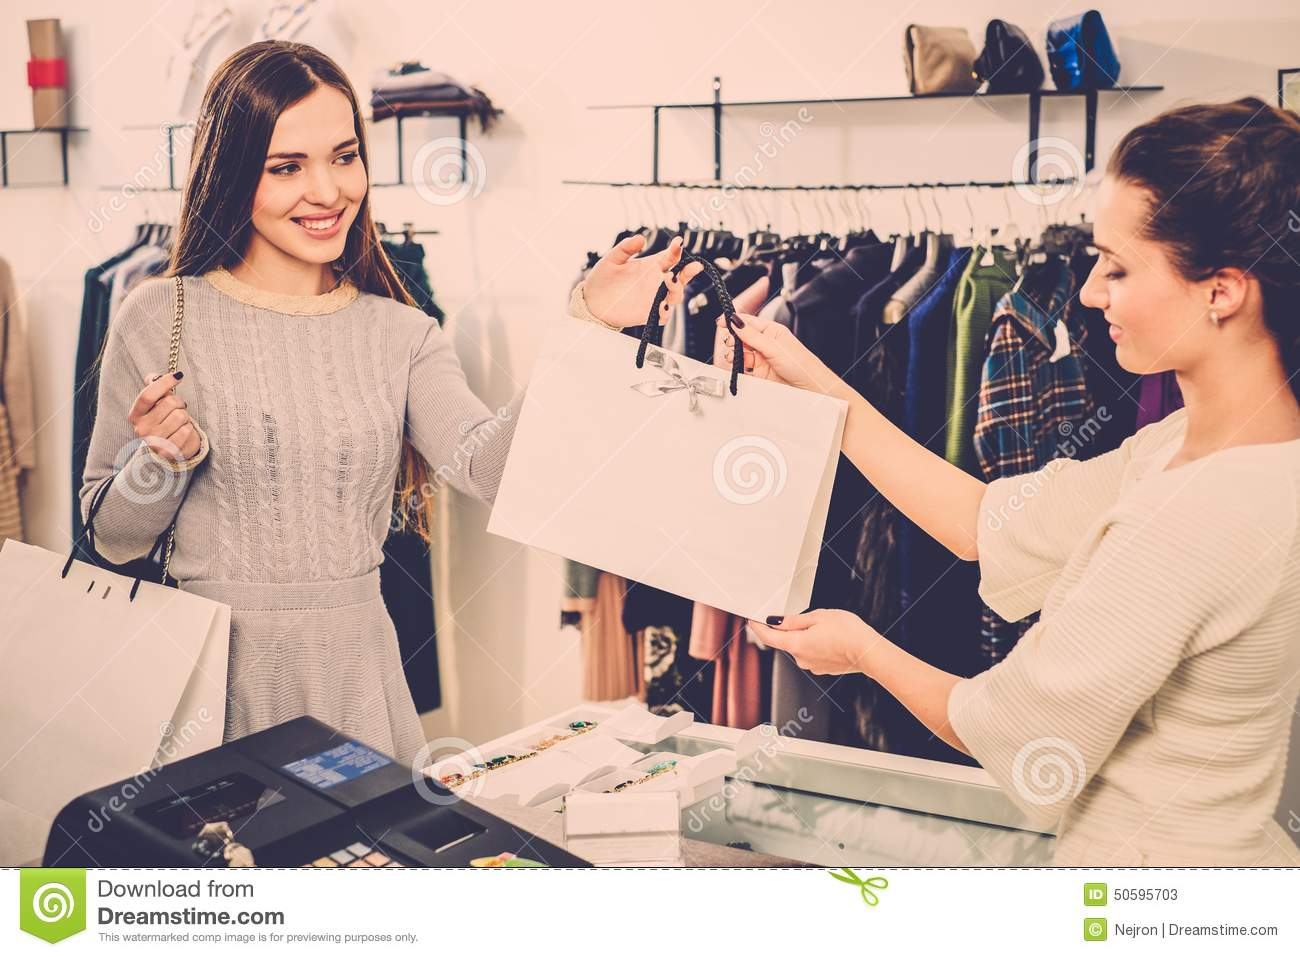 Happy Customer With Shopping Bag Stock Photo - Image: 50596318